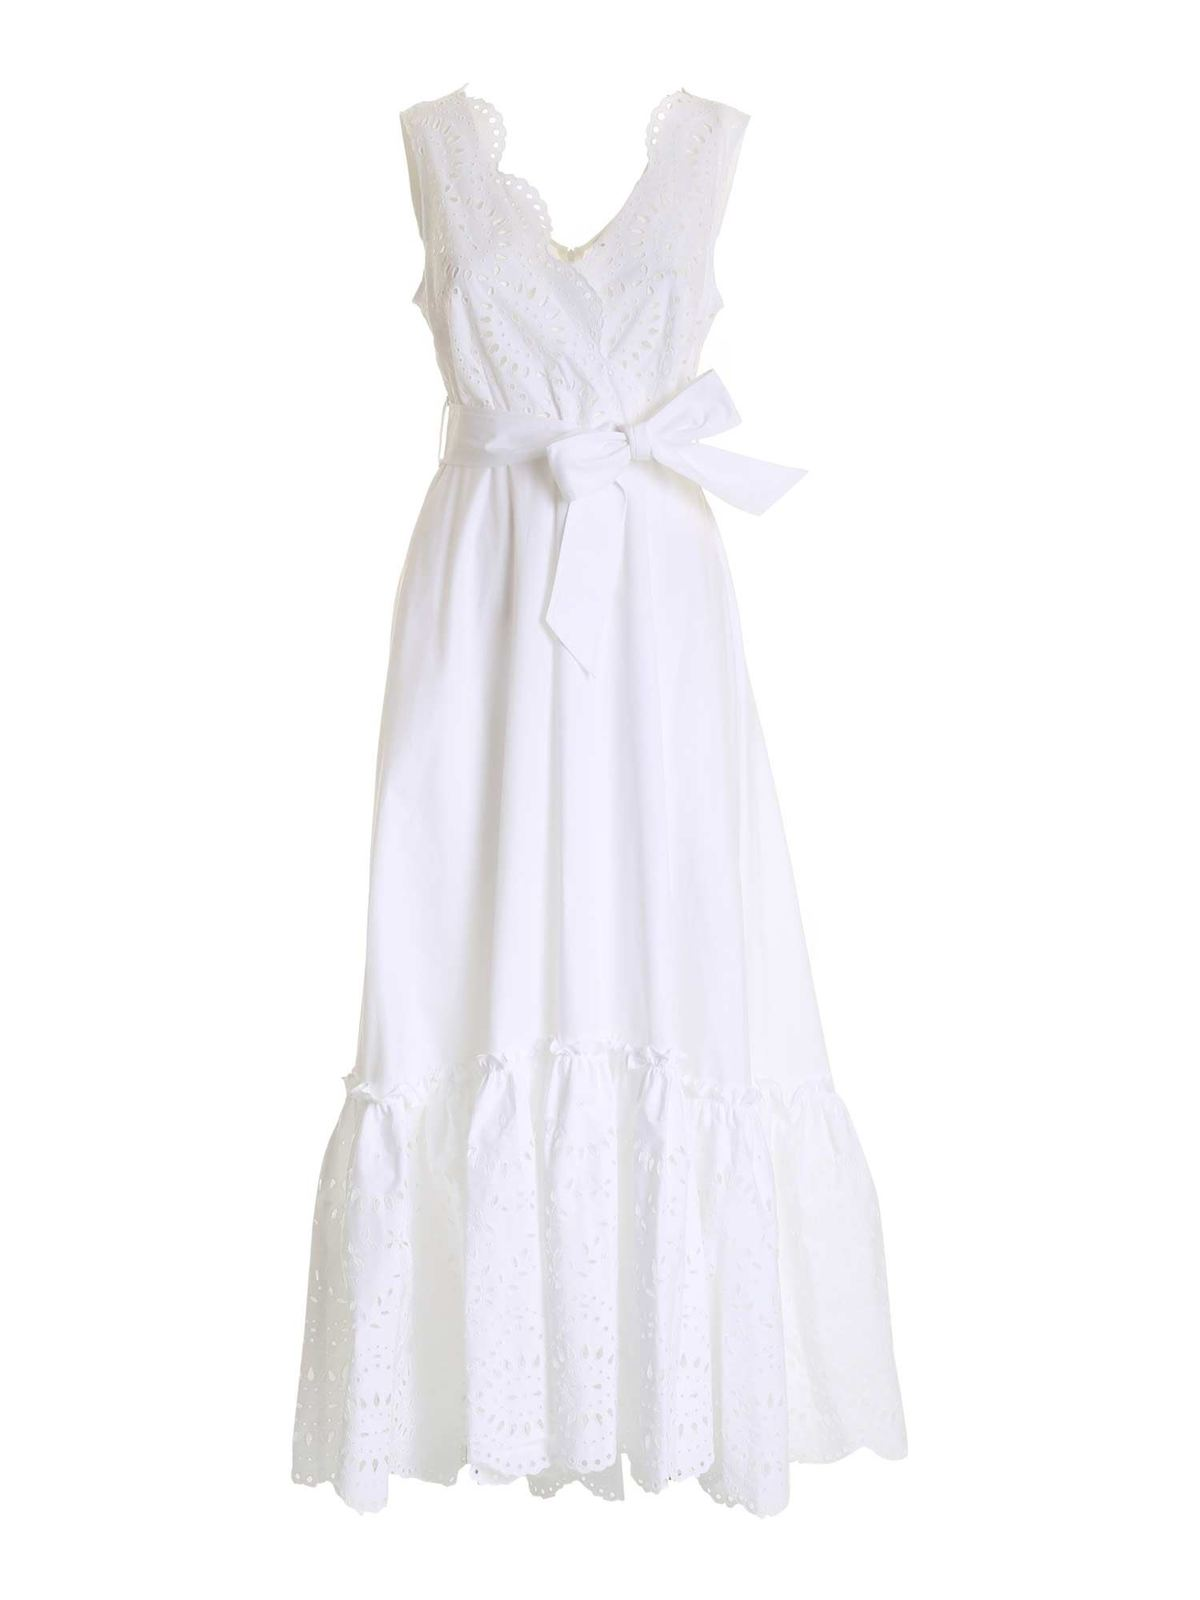 P.A.R.O.S.H. EMBROIDERED FLOUNCE DRESS IN WHITE